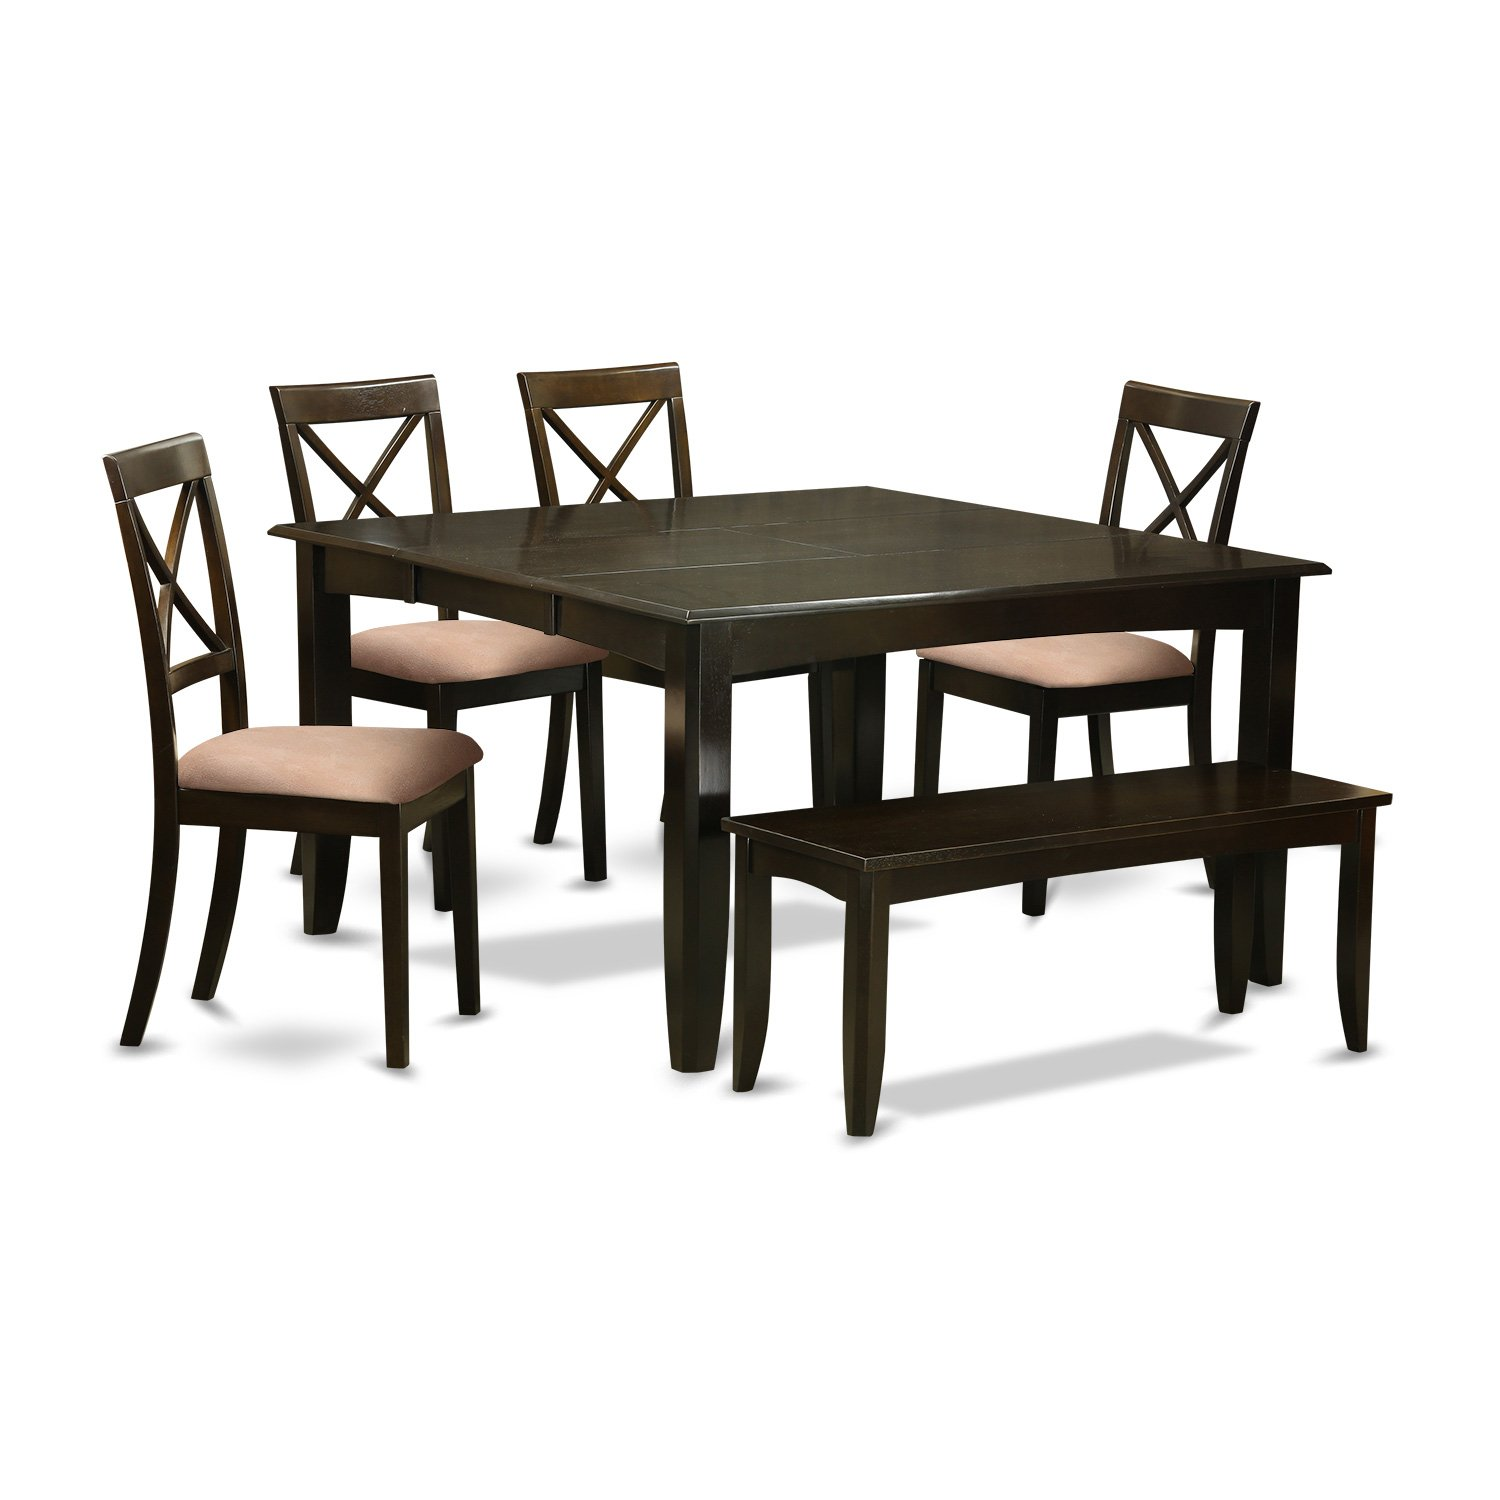 PFBO6-CAP-C 6 Pc Dining set-Table with Leaf and 4 Dinette Chairs plus on Bench